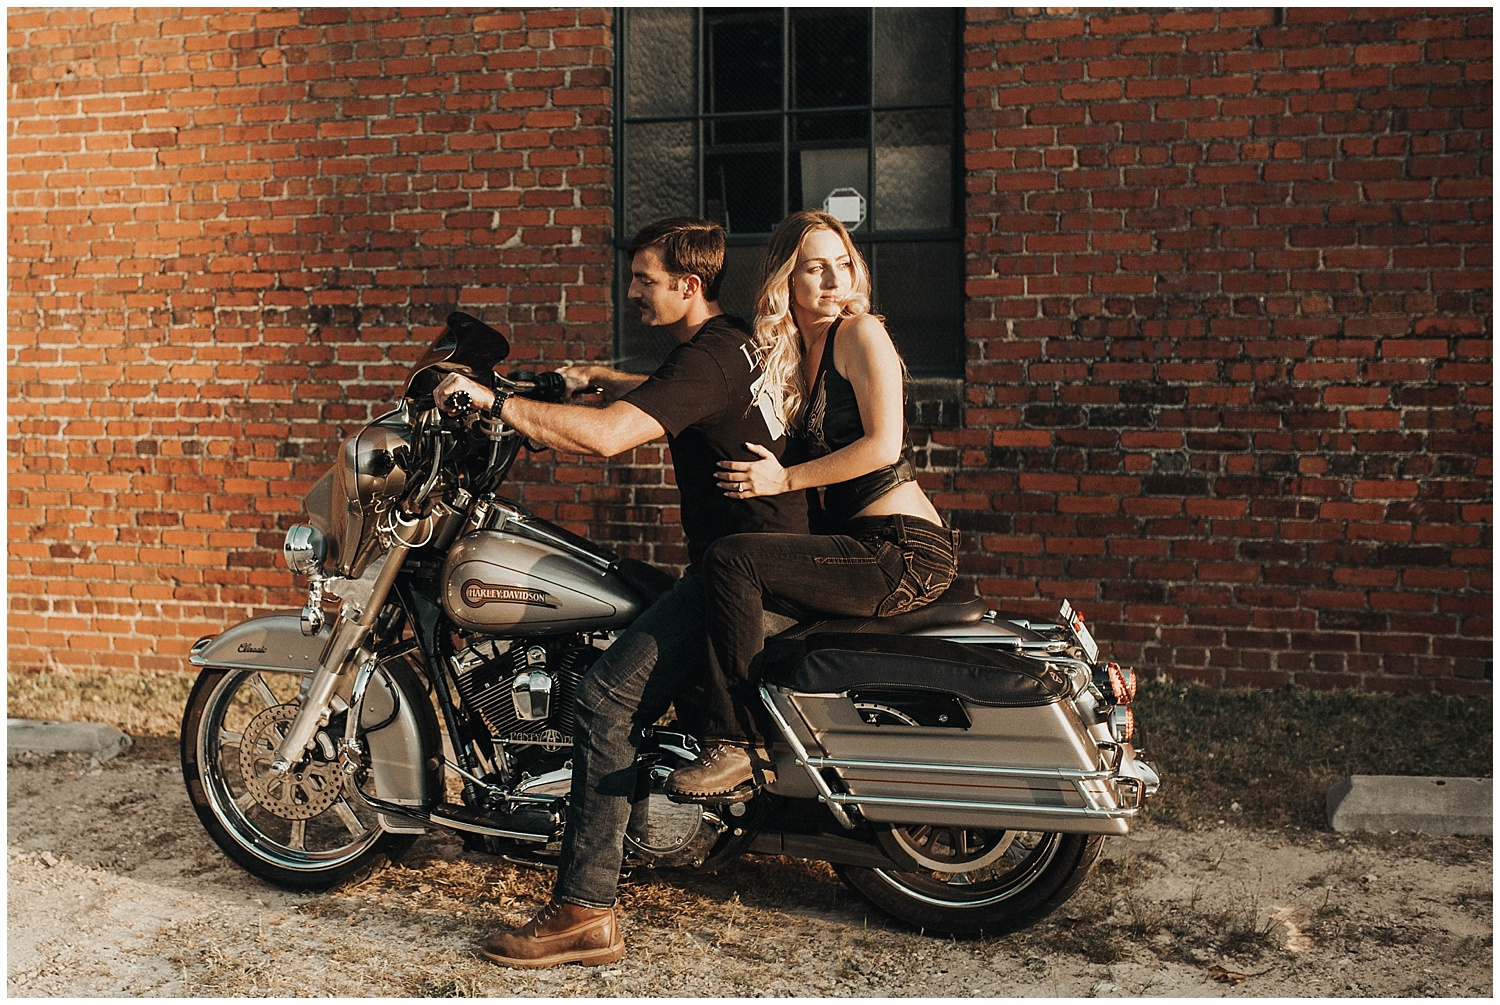 Cameron & Ashley Motorcycle Engagement Session Raleigh, NC.